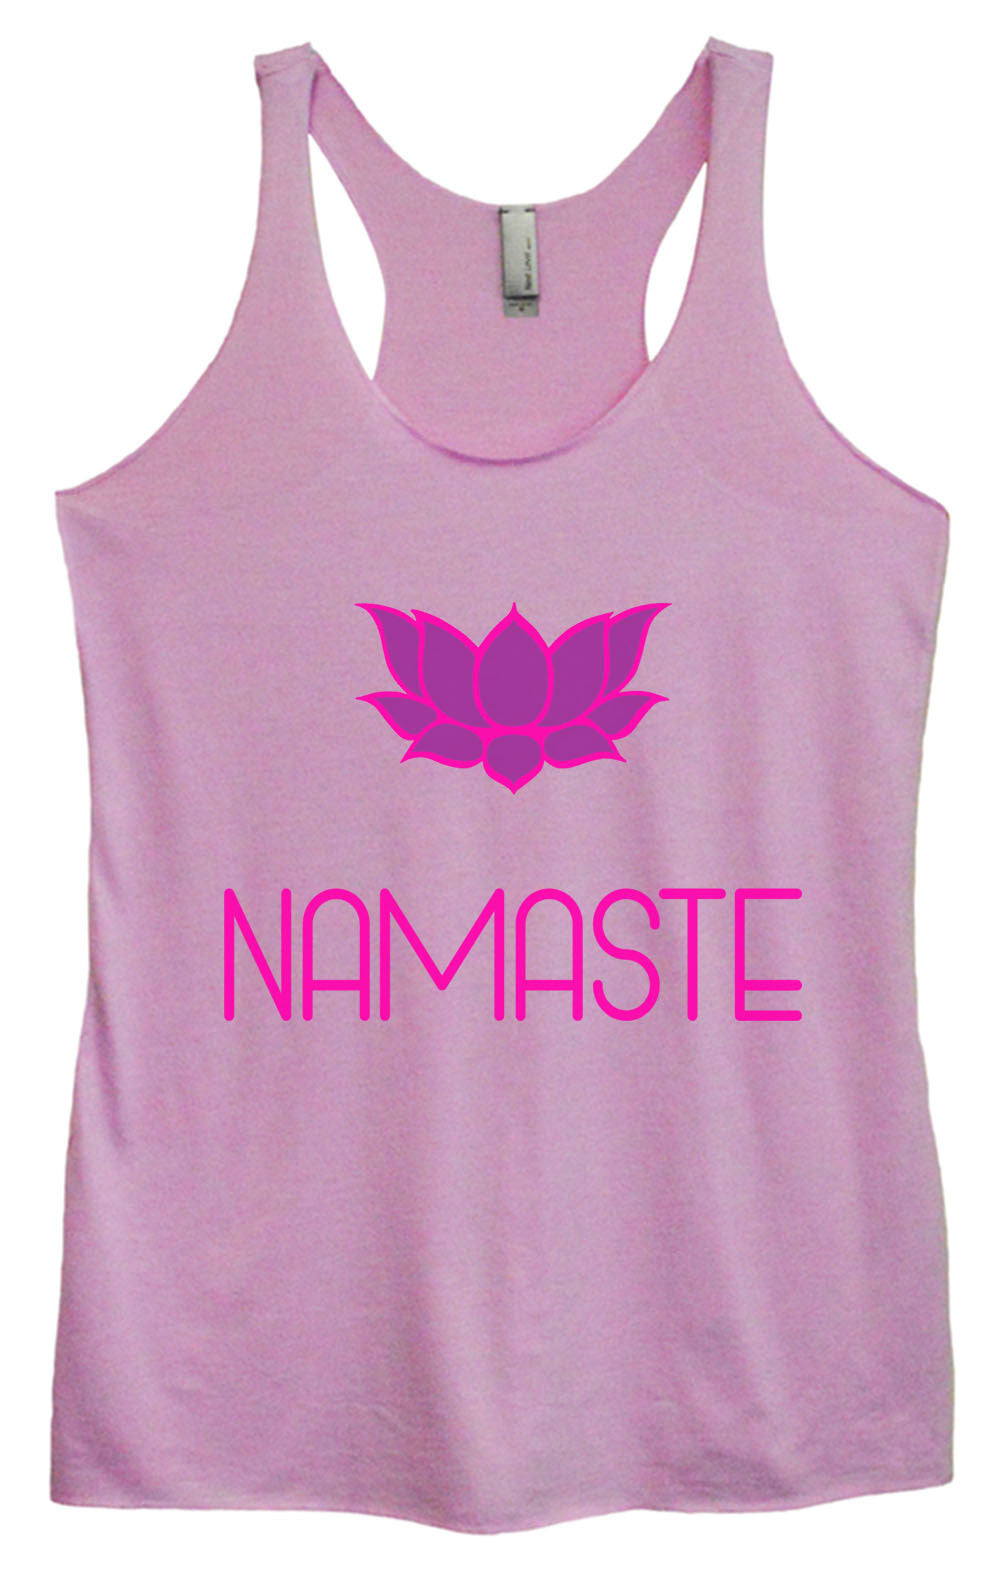 Womens Fashion Triblend Tank Top - Namaste - Tri-631 - Funny Shirts Tank Tops Burnouts and Triblends  - 3